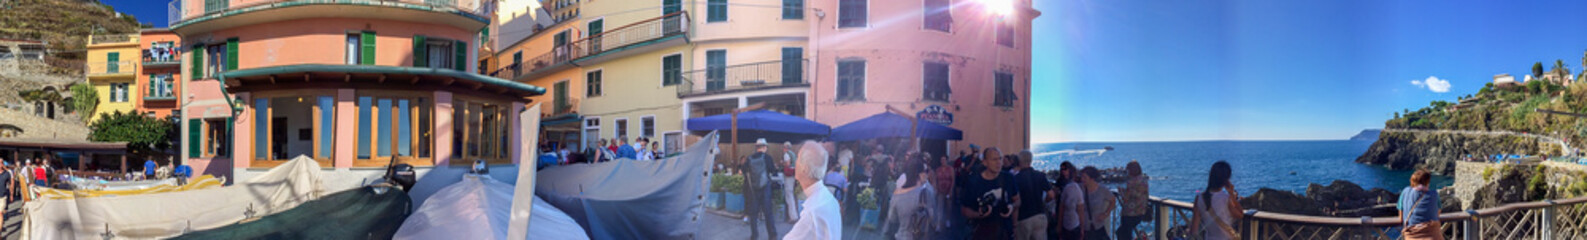 Beautiful panoramic view of Cinque Terre village, Five Lands, It